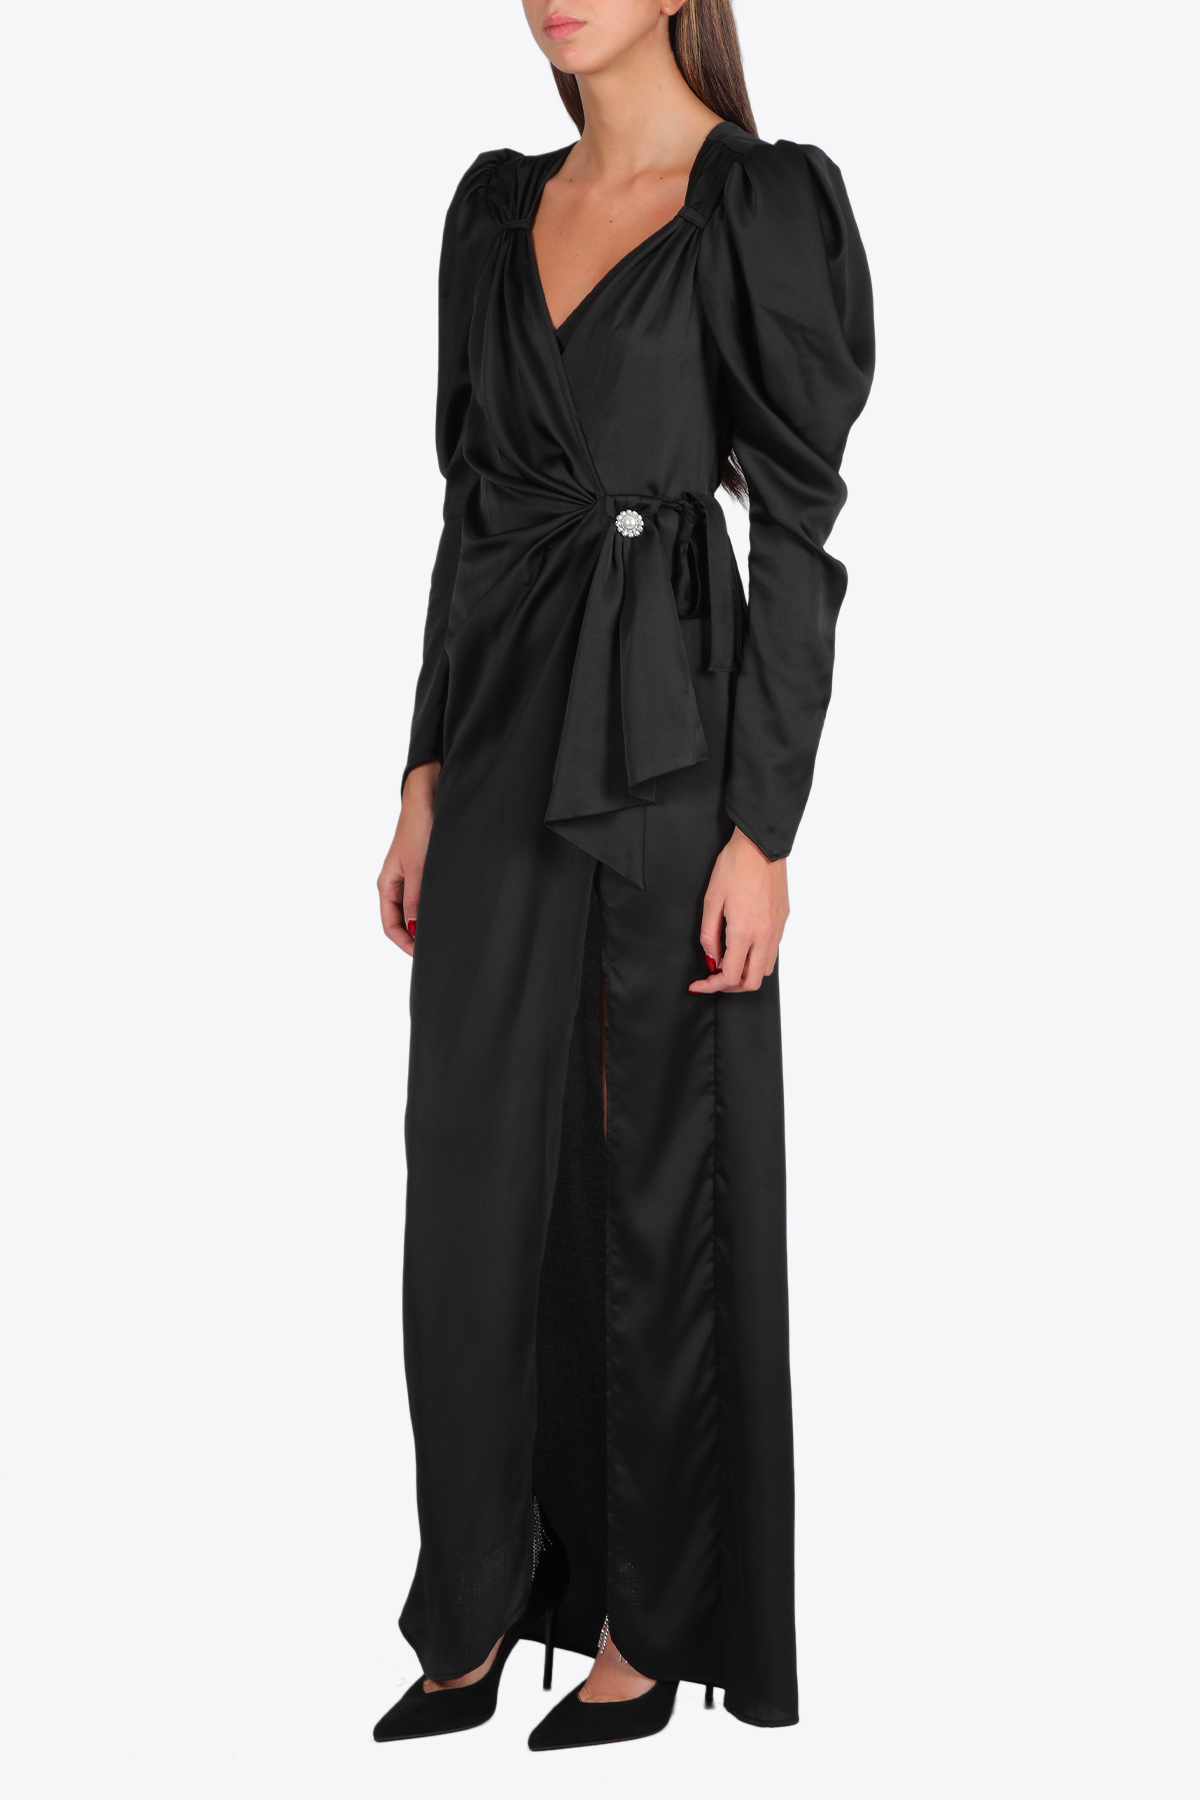 PUFF SLEEVES LONG DRESS NINEMINUTES | 11 | THE NUITBLACK